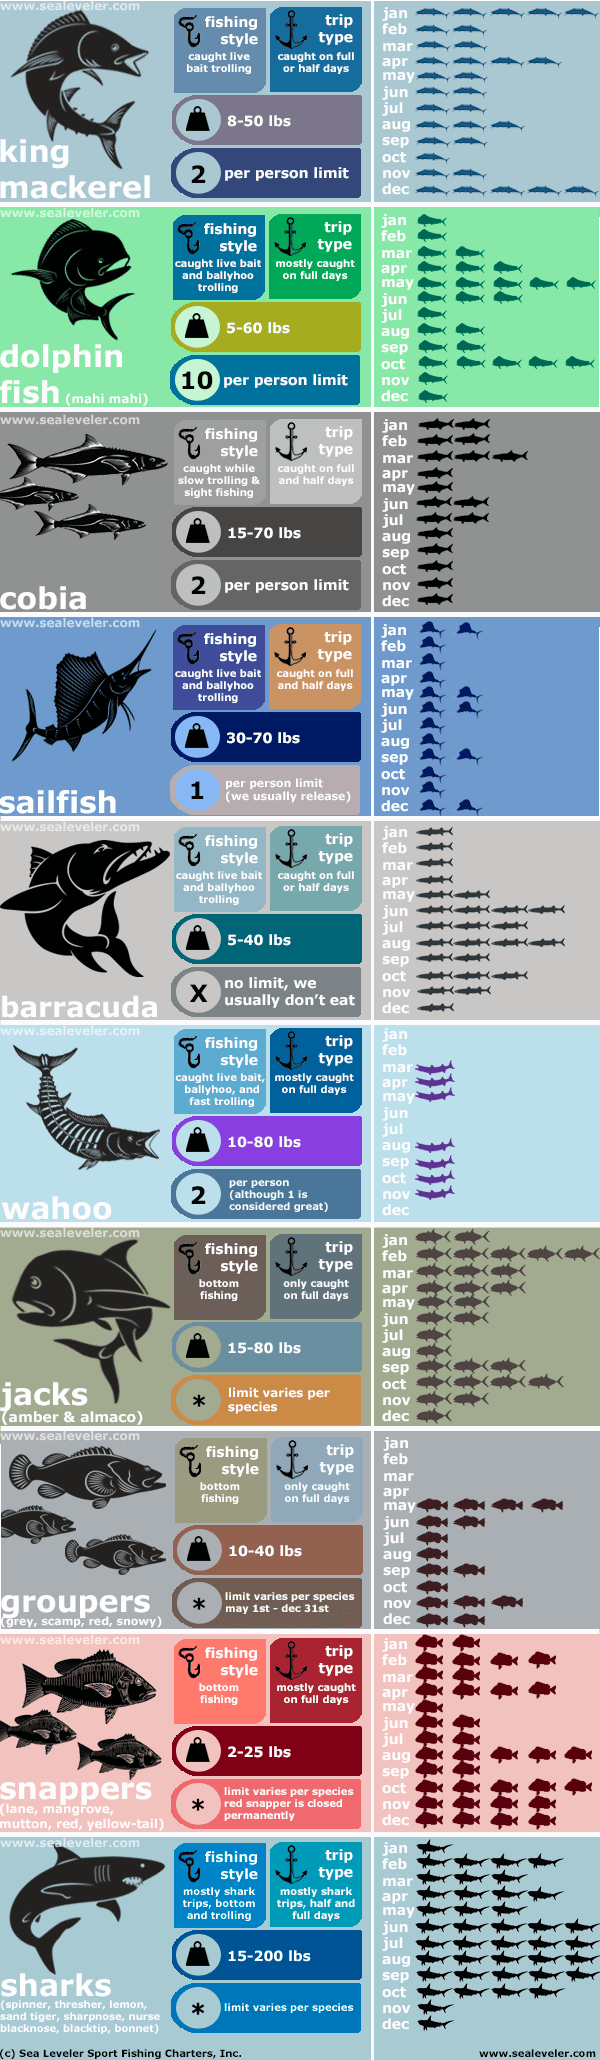 fish caught by month infographic